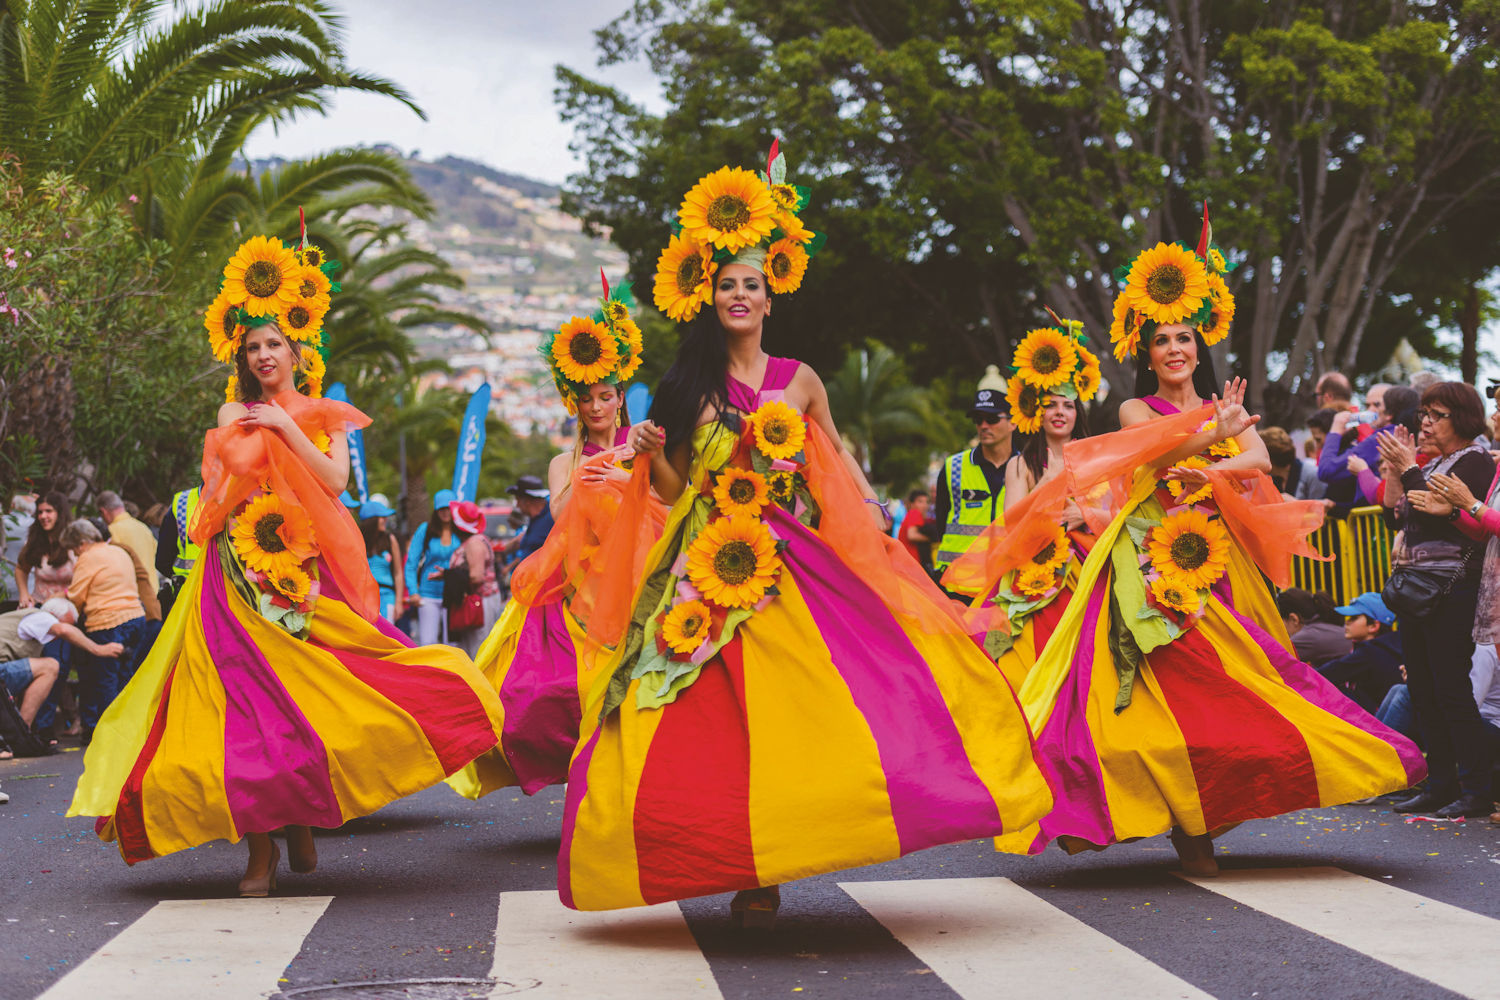 Madeira flower festival, traditional dress